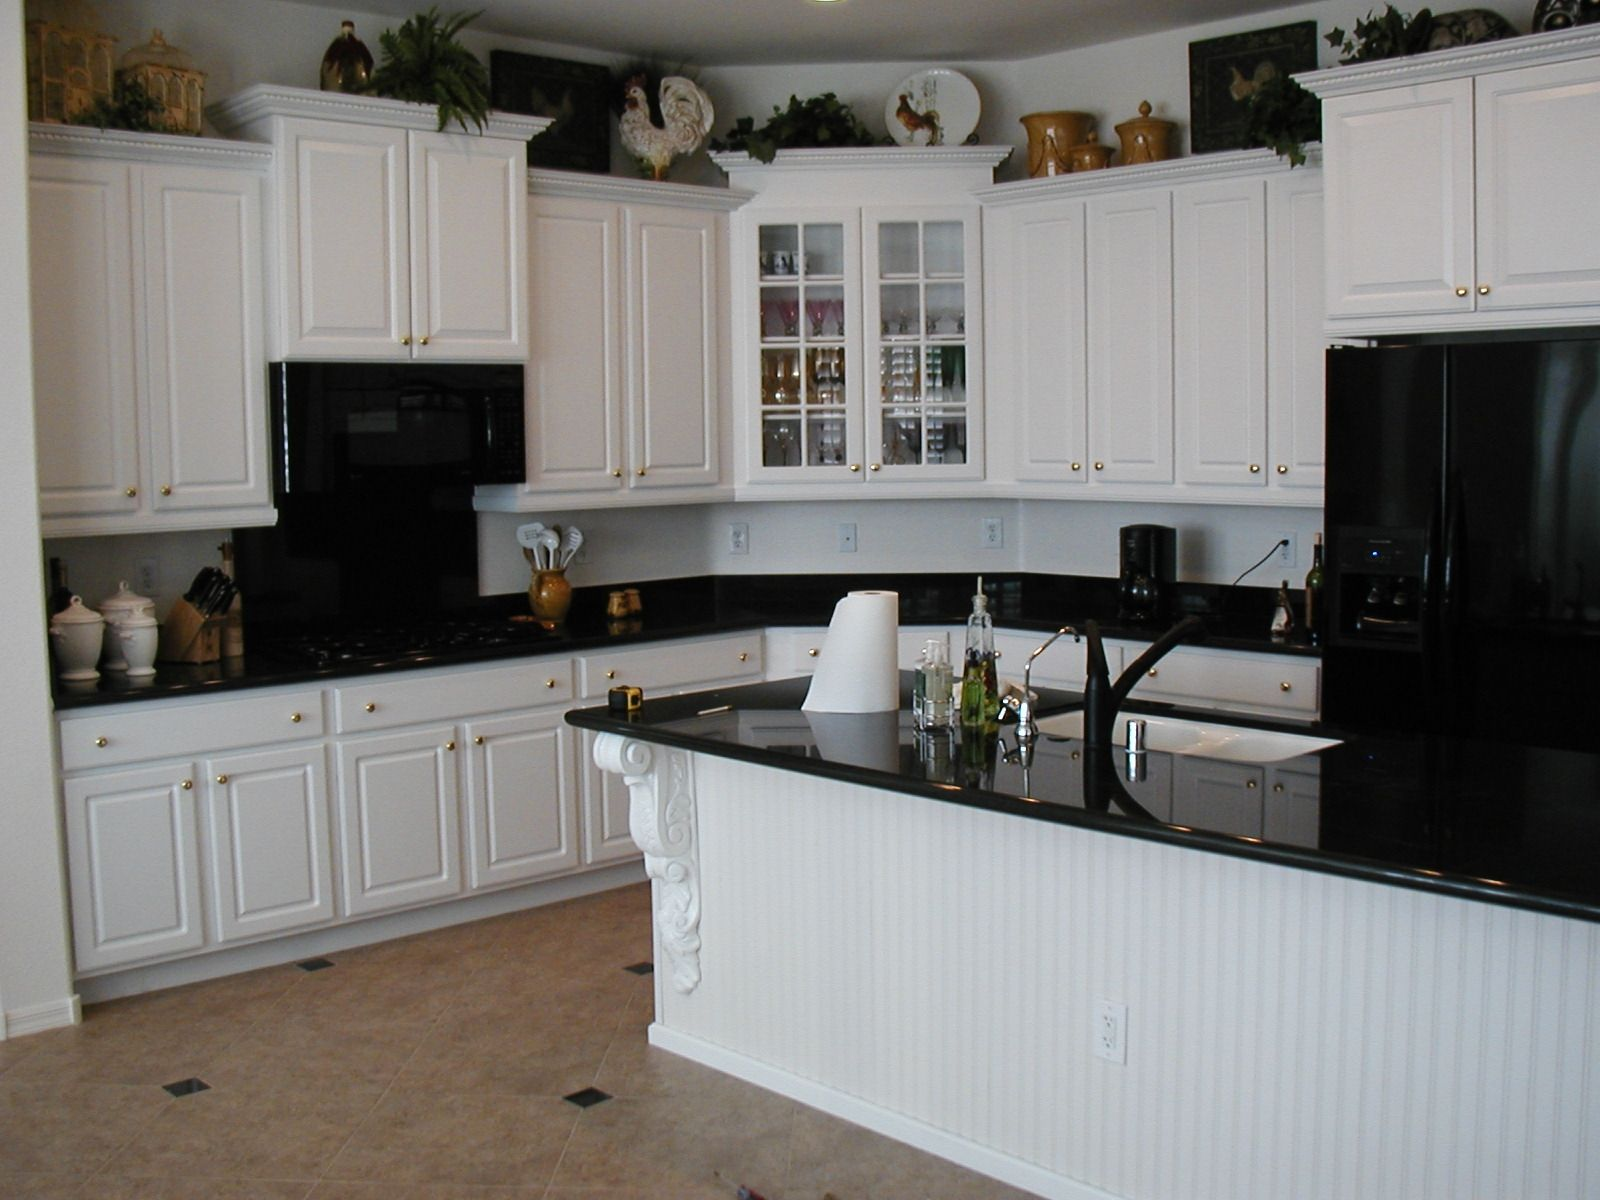 White Galley Kitchen With Black Appliances Ways To Achieve The Perfect Black And White Kitchen  Black